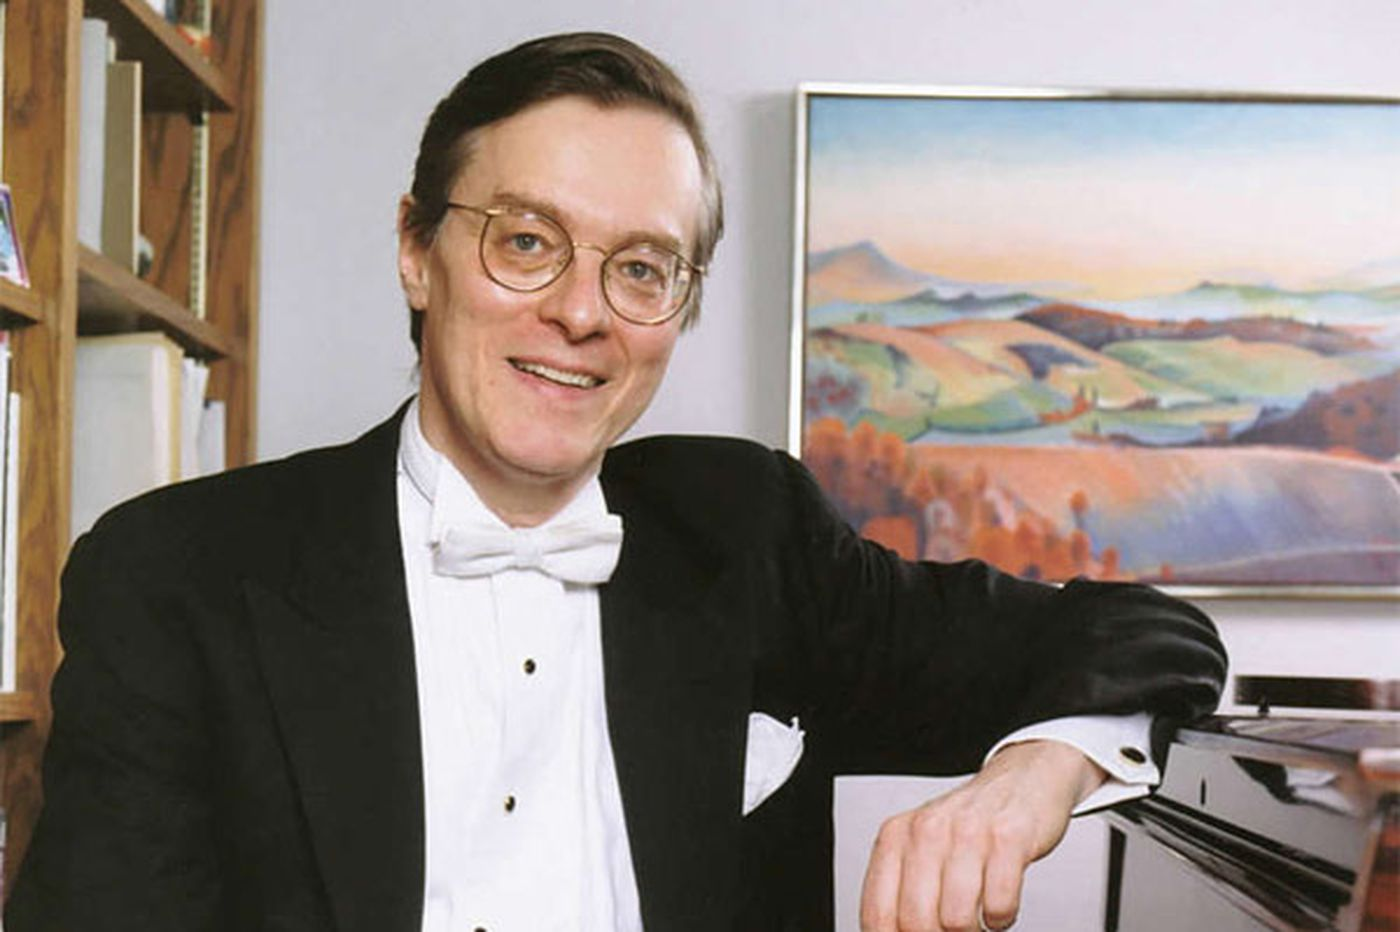 Peter Serkin, 72, famed pianist who studied at Curtis Institute of Music, dies